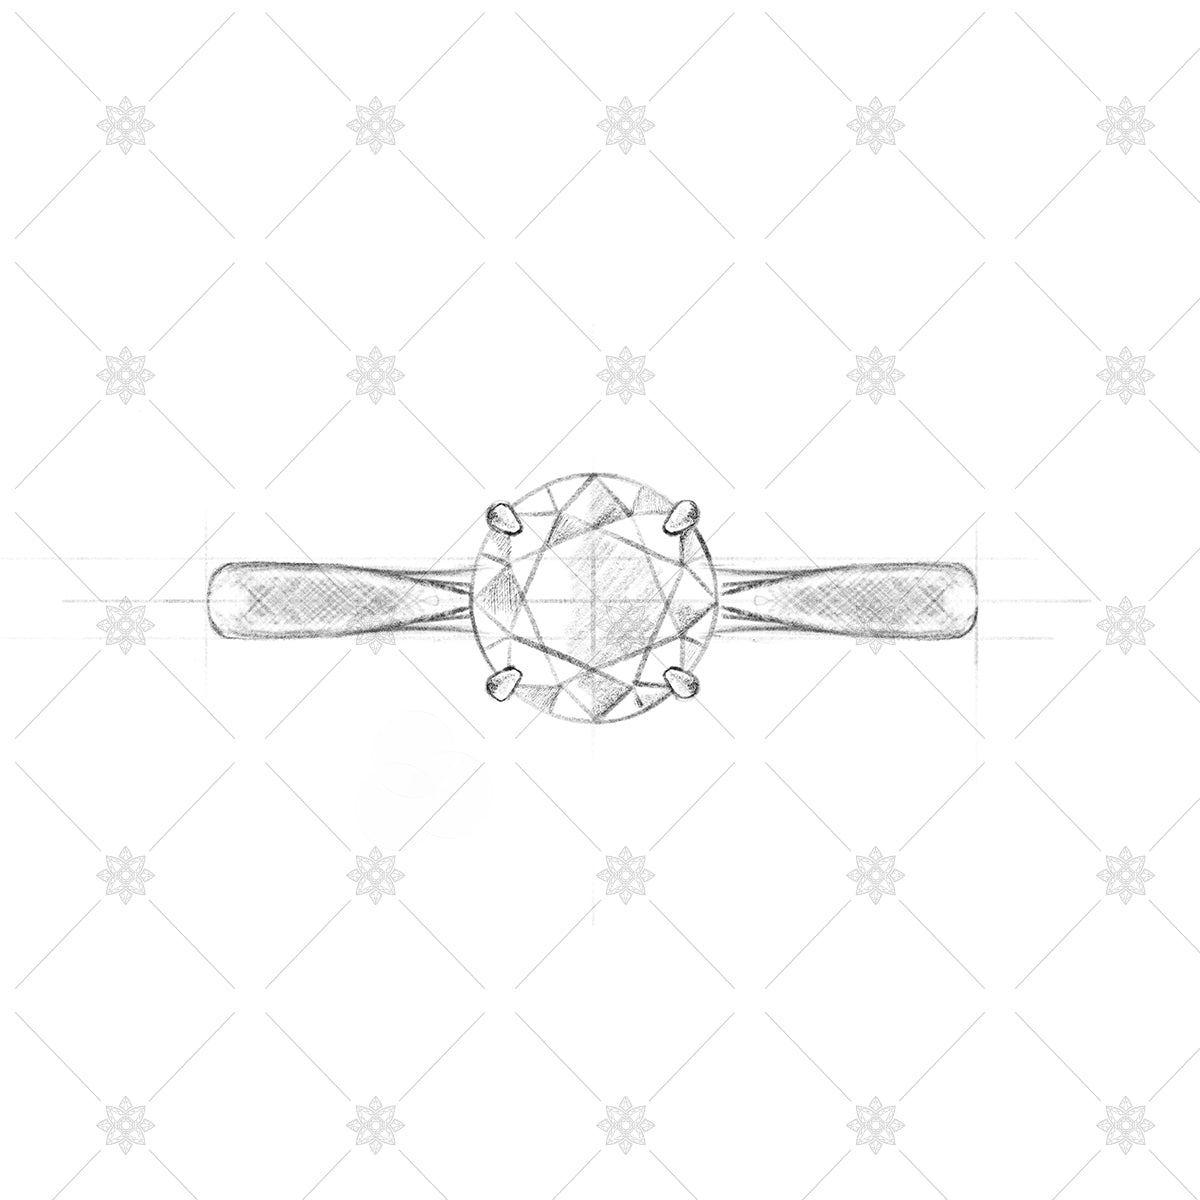 Diamond Ring Sketch - Solitaire pencil sketch